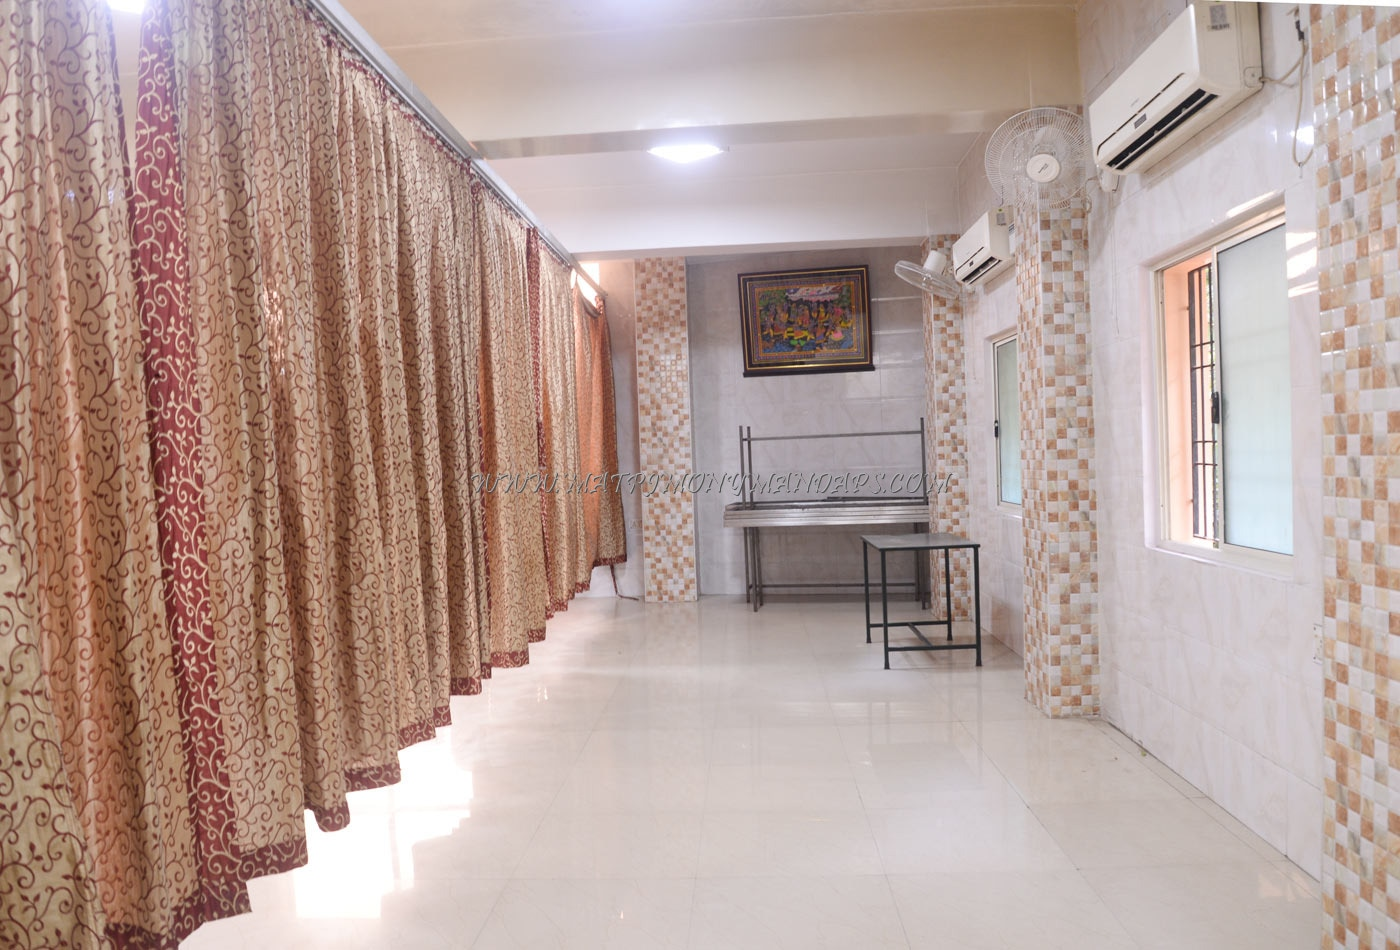 Find the availability of the Sree Balaji Hall  1 (A/C) in Nandanam, Chennai and avail special offers